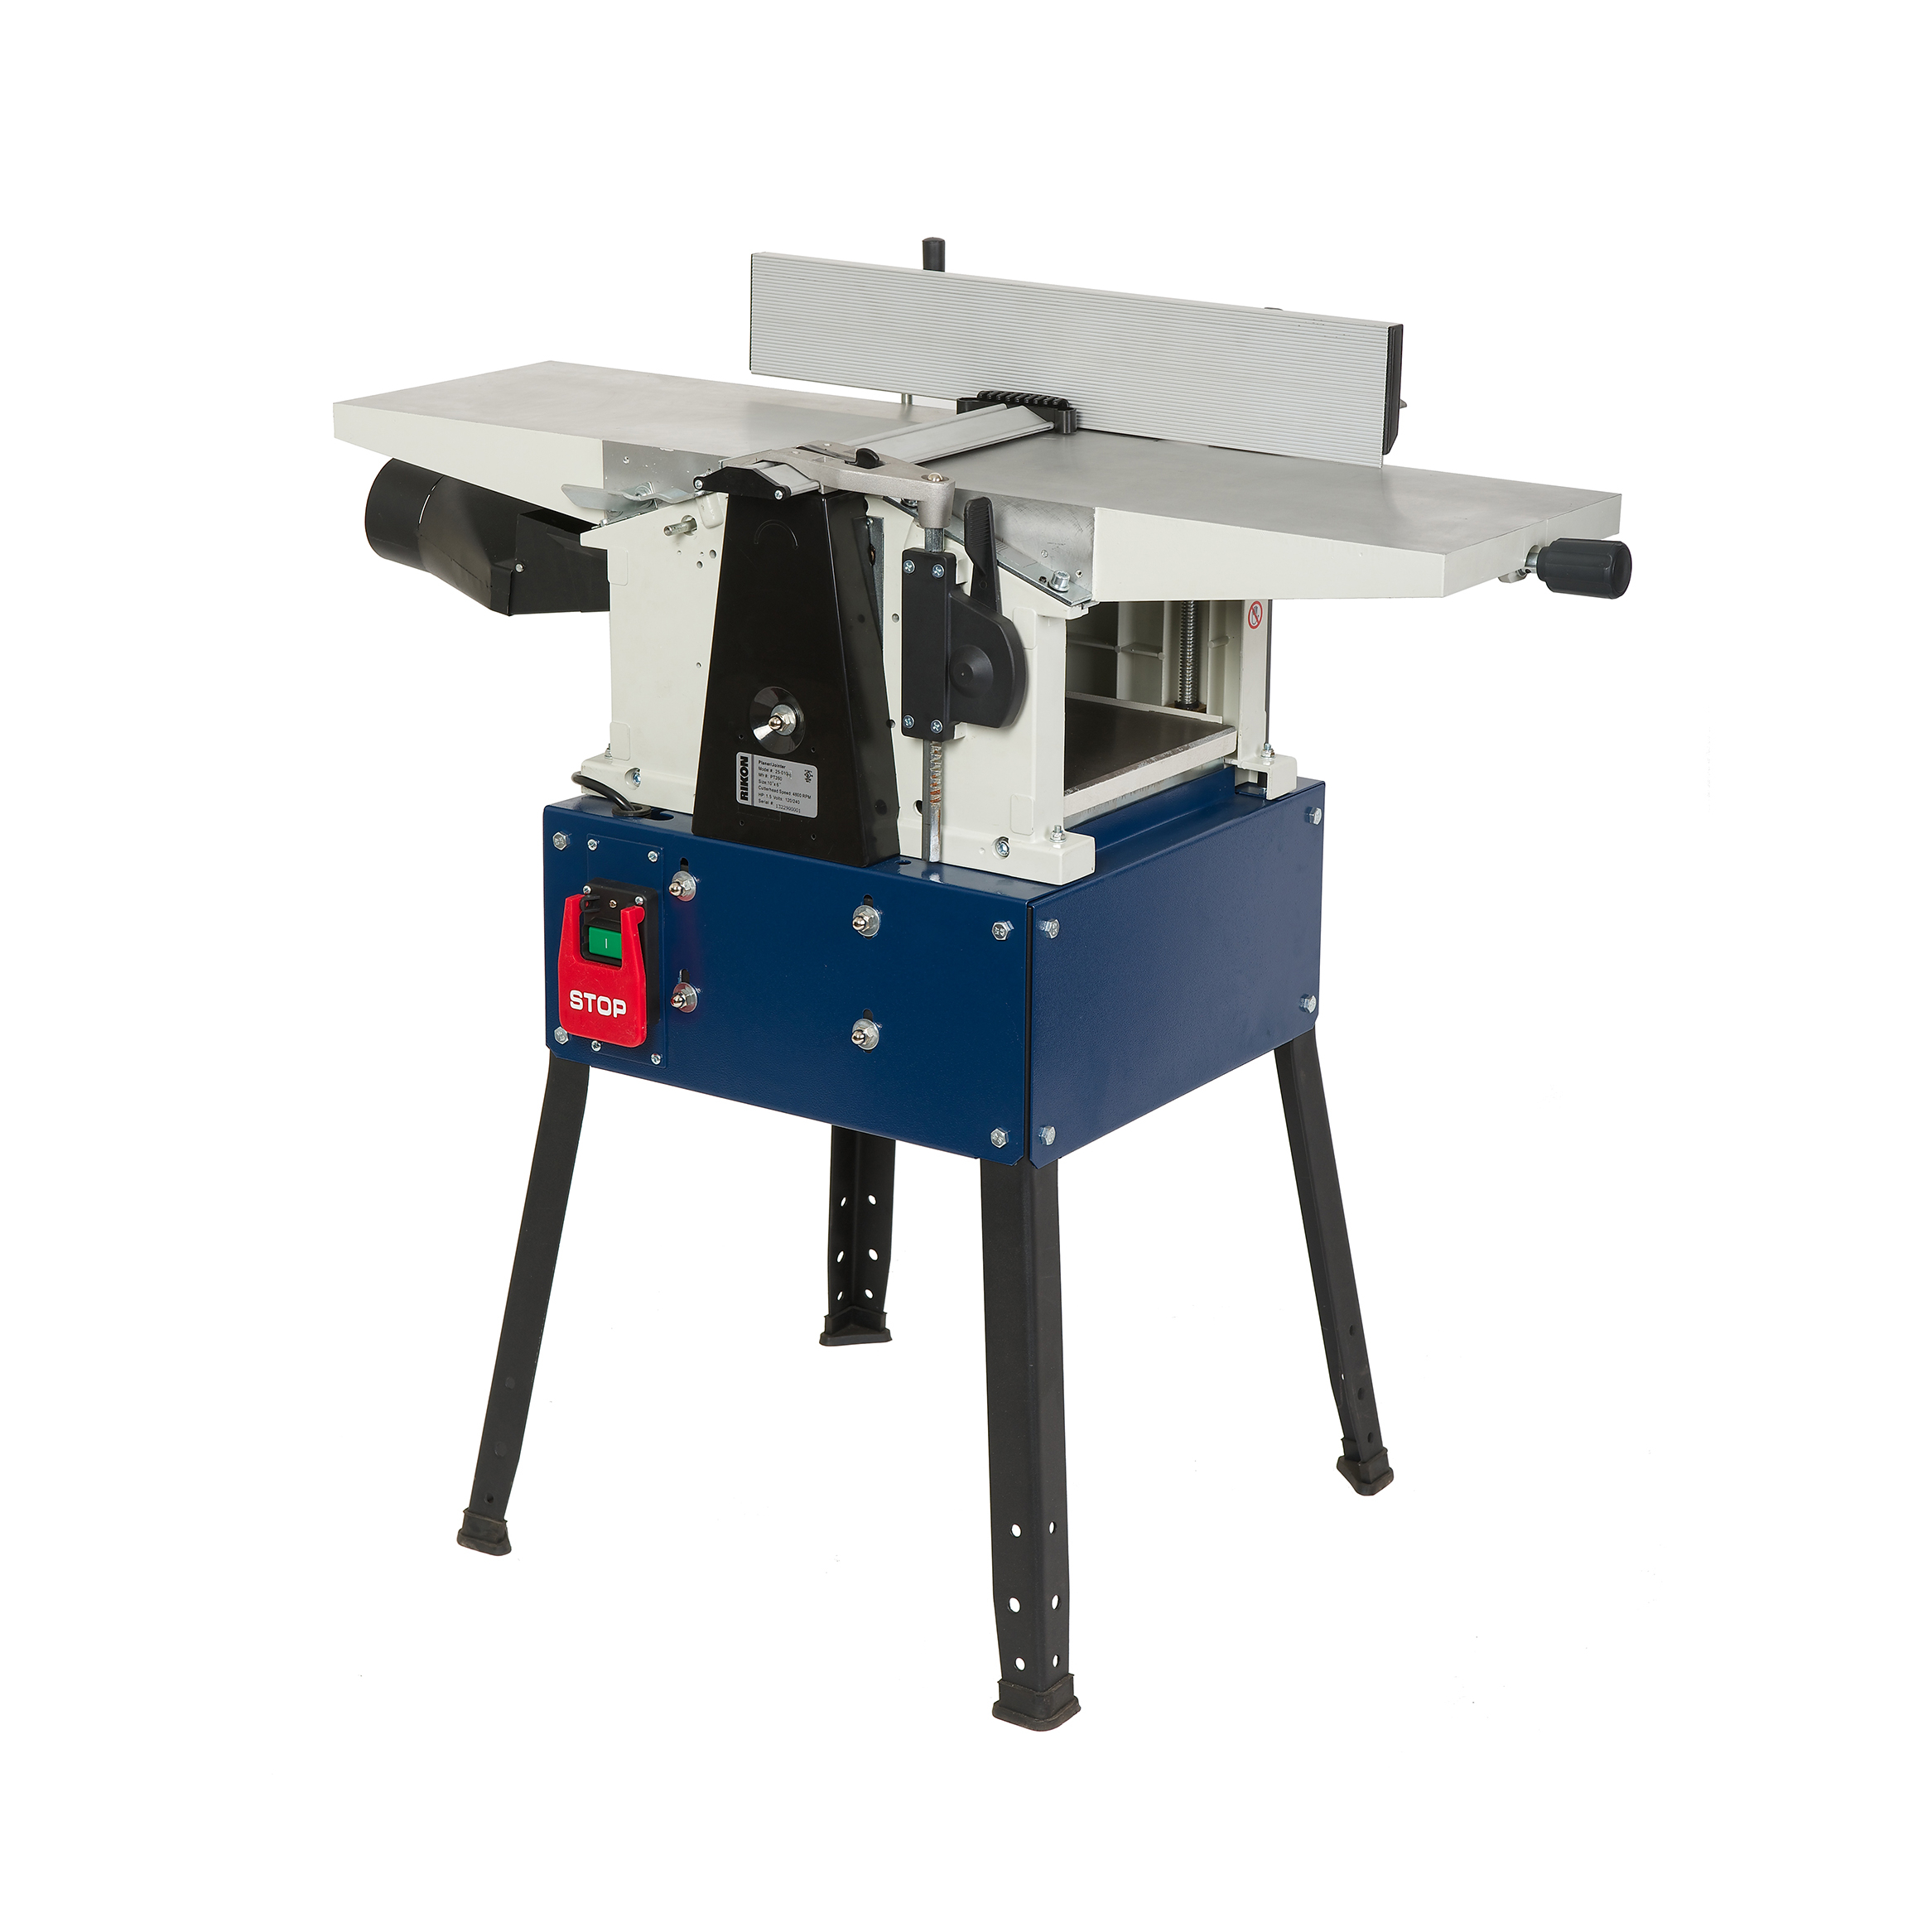 Model 25 010h 10 Helical Planer Jointer Rikon Power Tools Wiring For 220v Table Saw